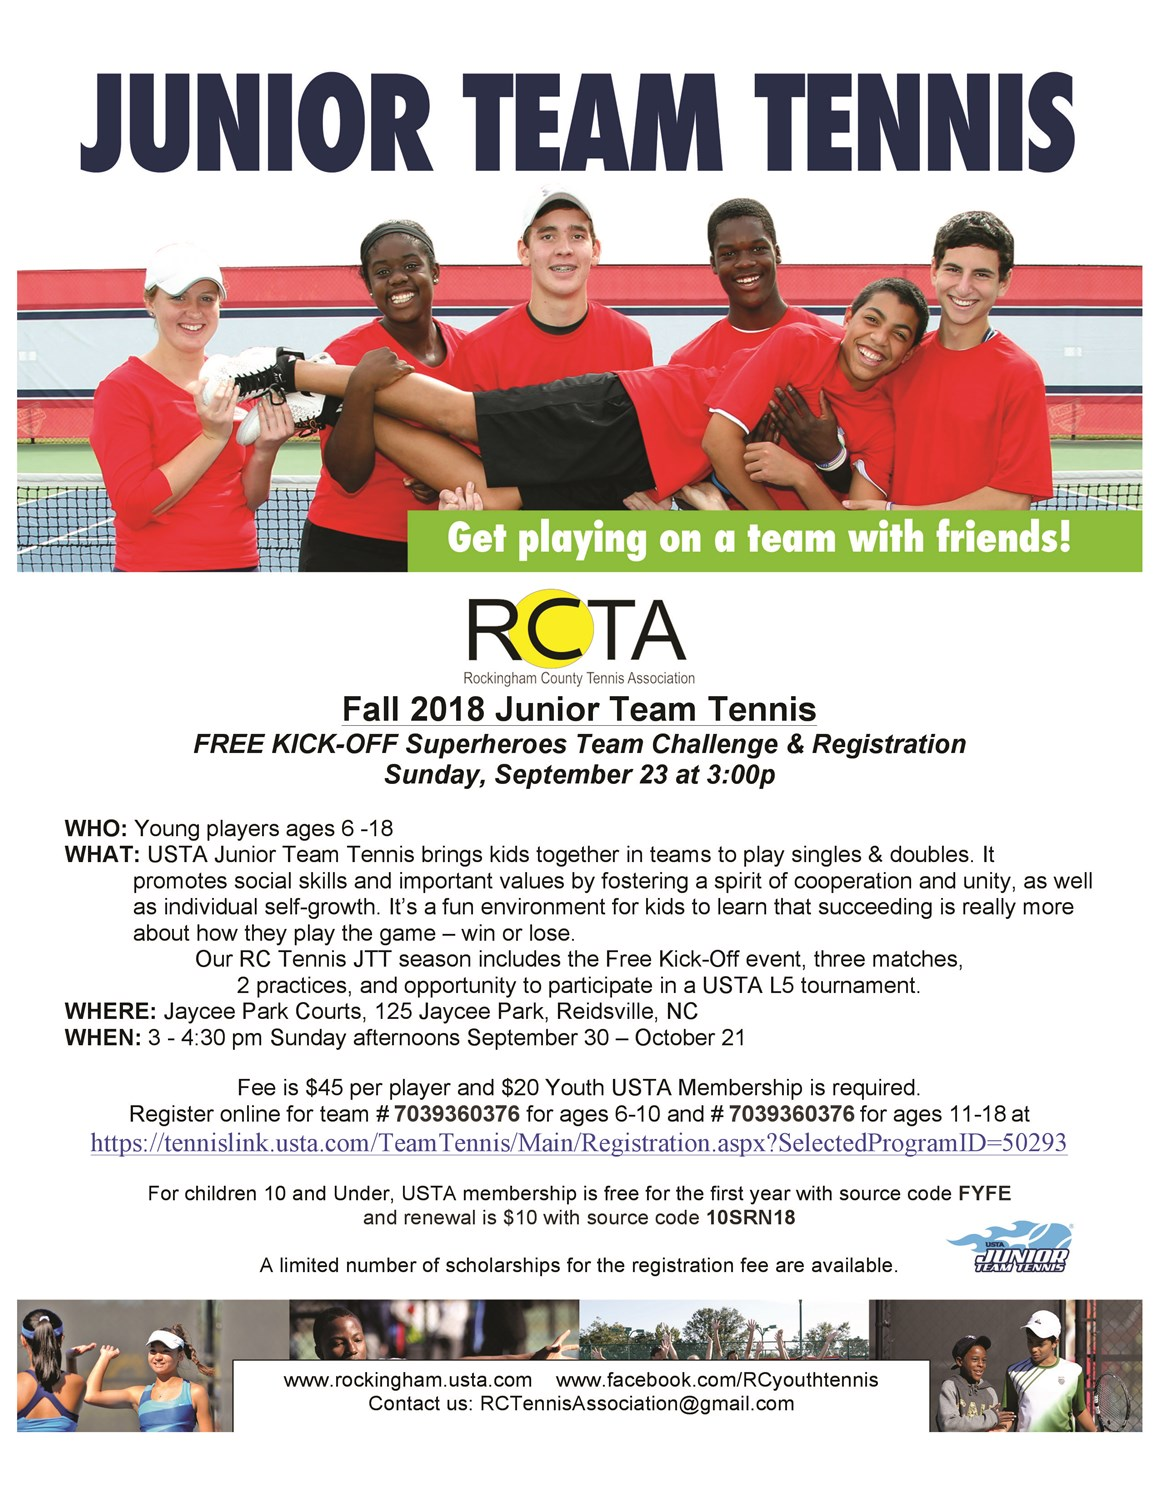 Fall_2018_RCTA_Final_Updated.2_JTT__flyer_8.19.20-page-0